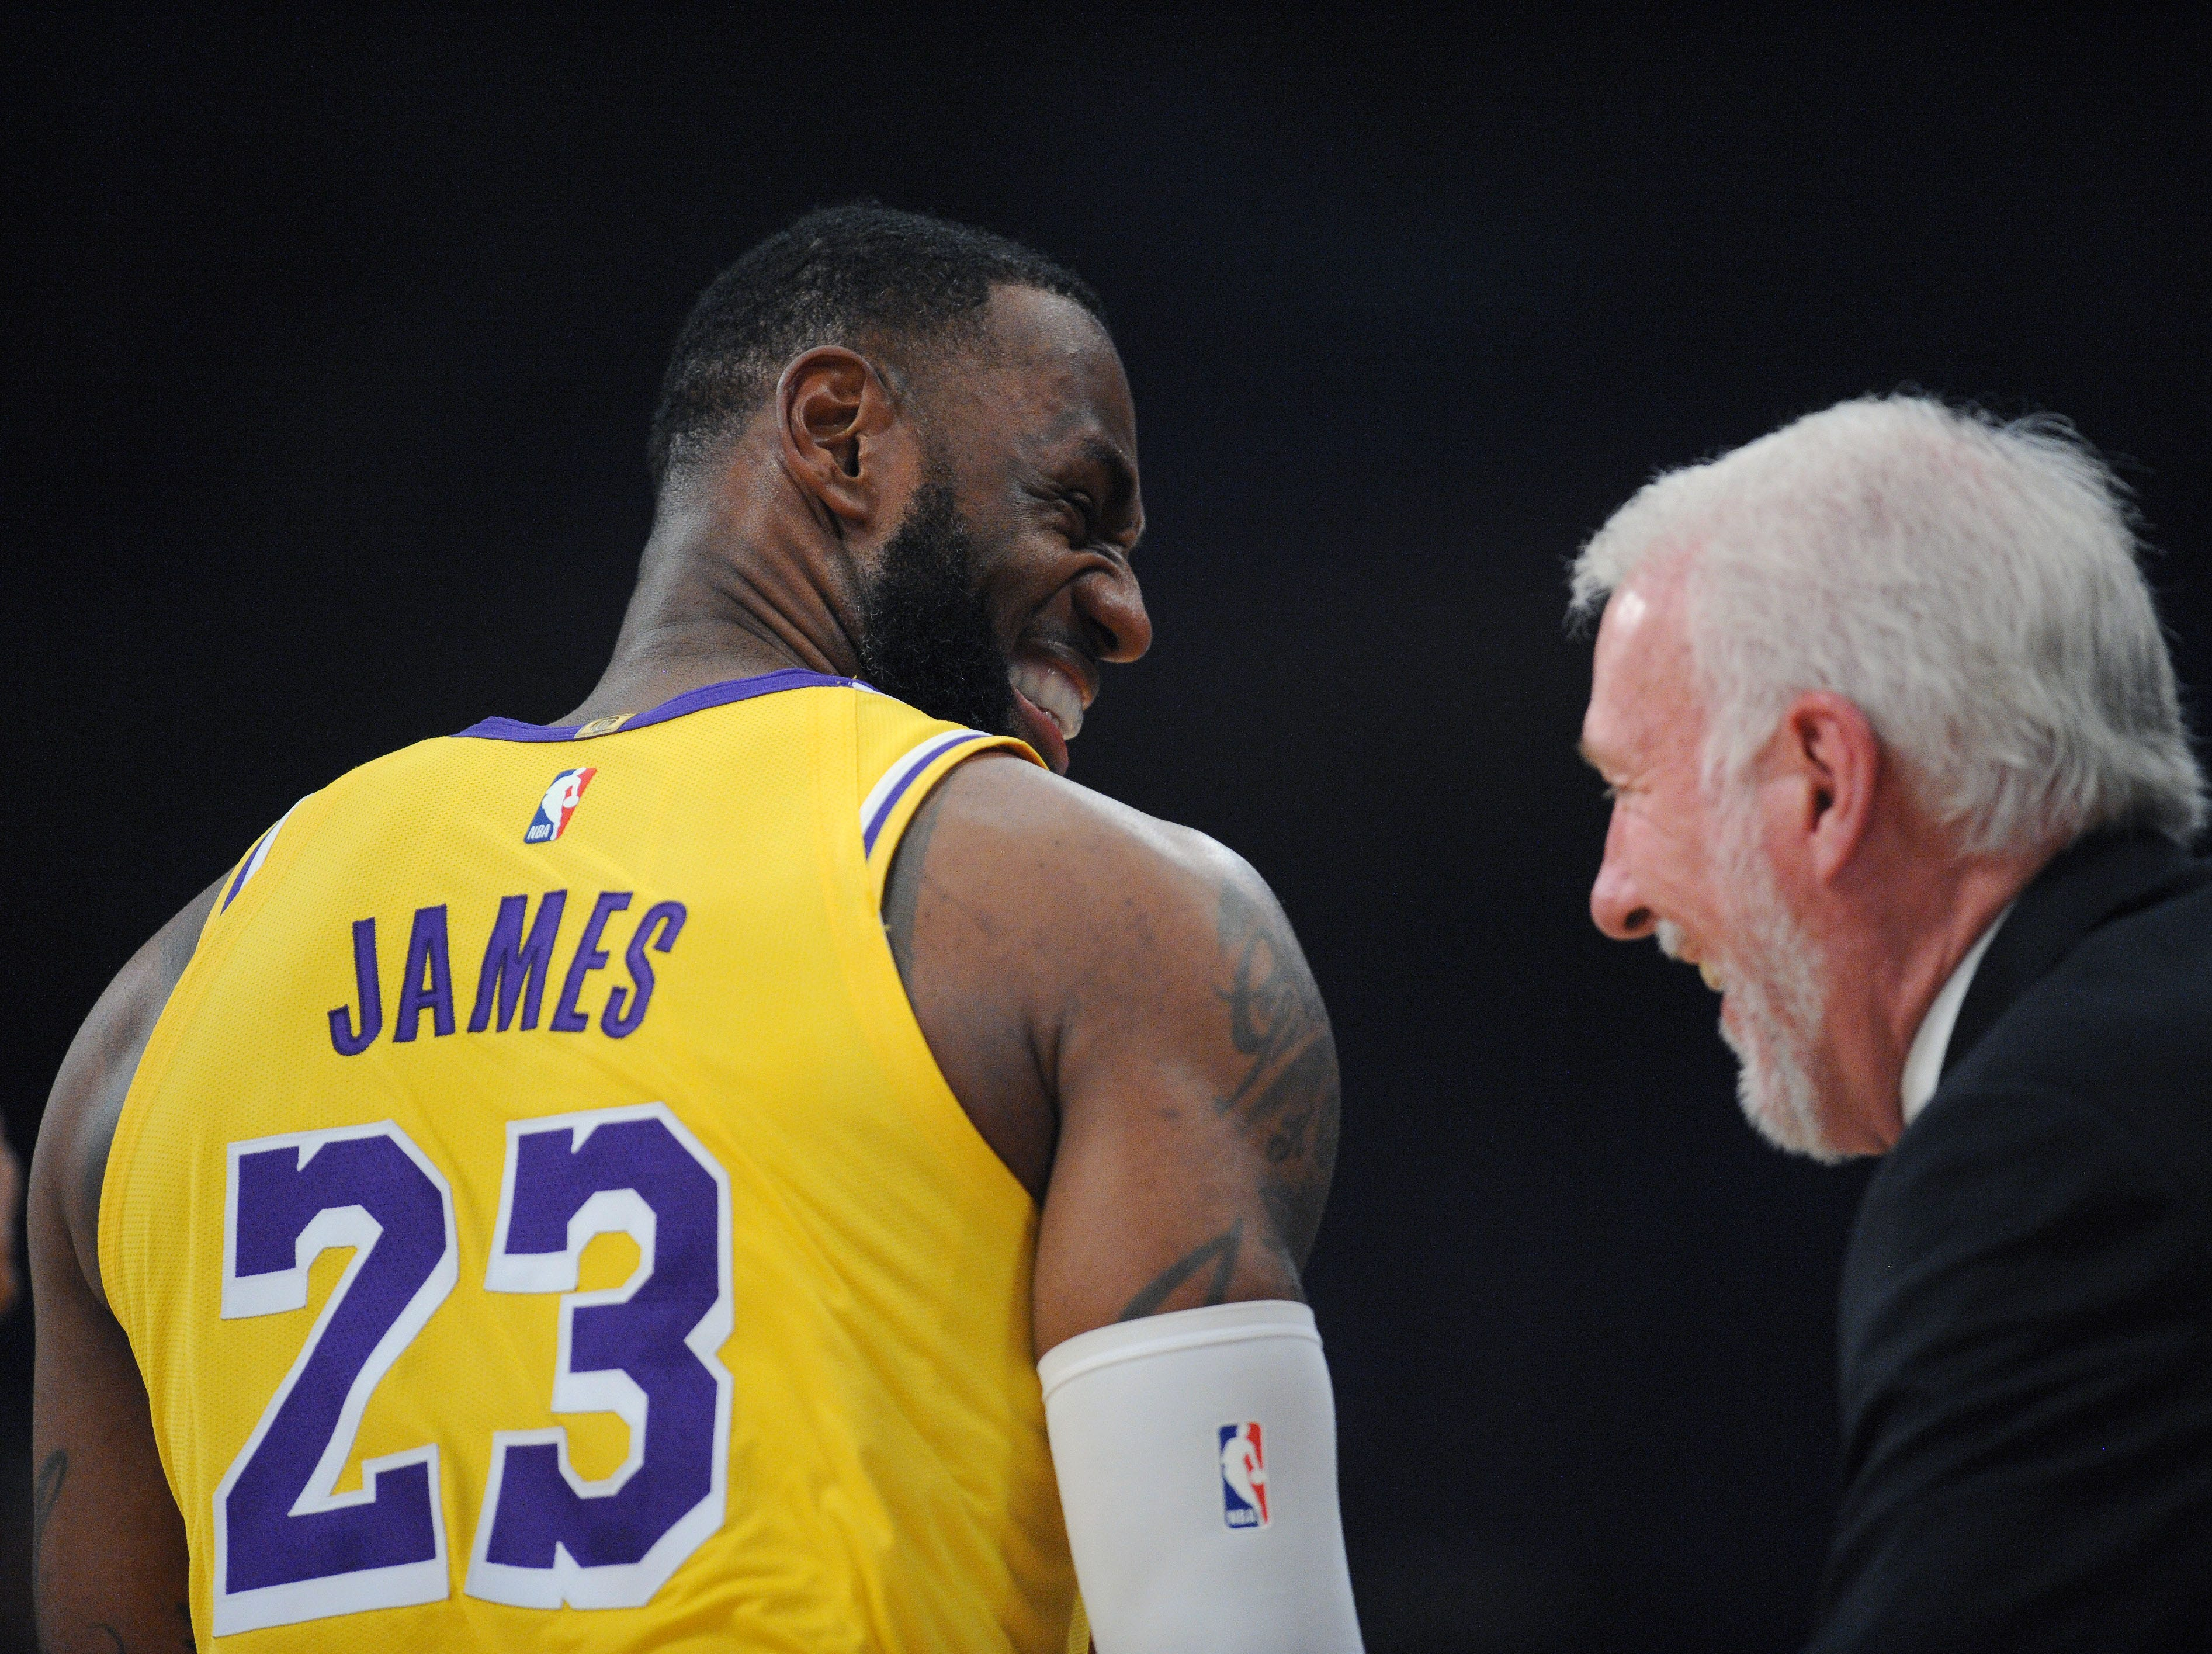 Oct. 22, 2018: James shares a laugh with Spurs coach Gregg Popovich before playing San Antonio at Staples Center.